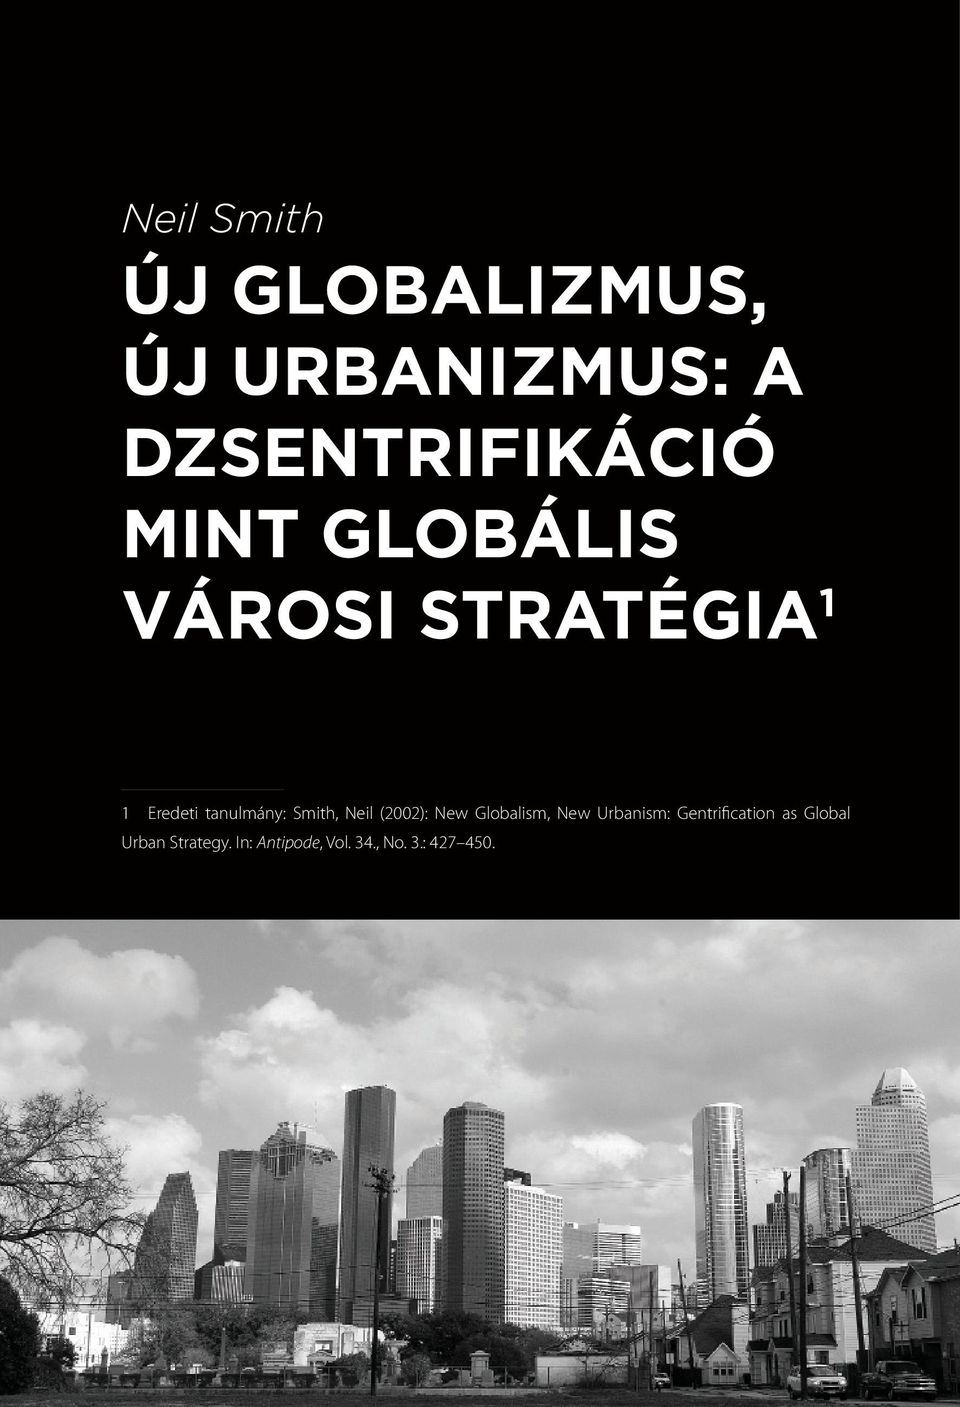 (2002): New Globalism, New Urbanism: Gentrification as Global